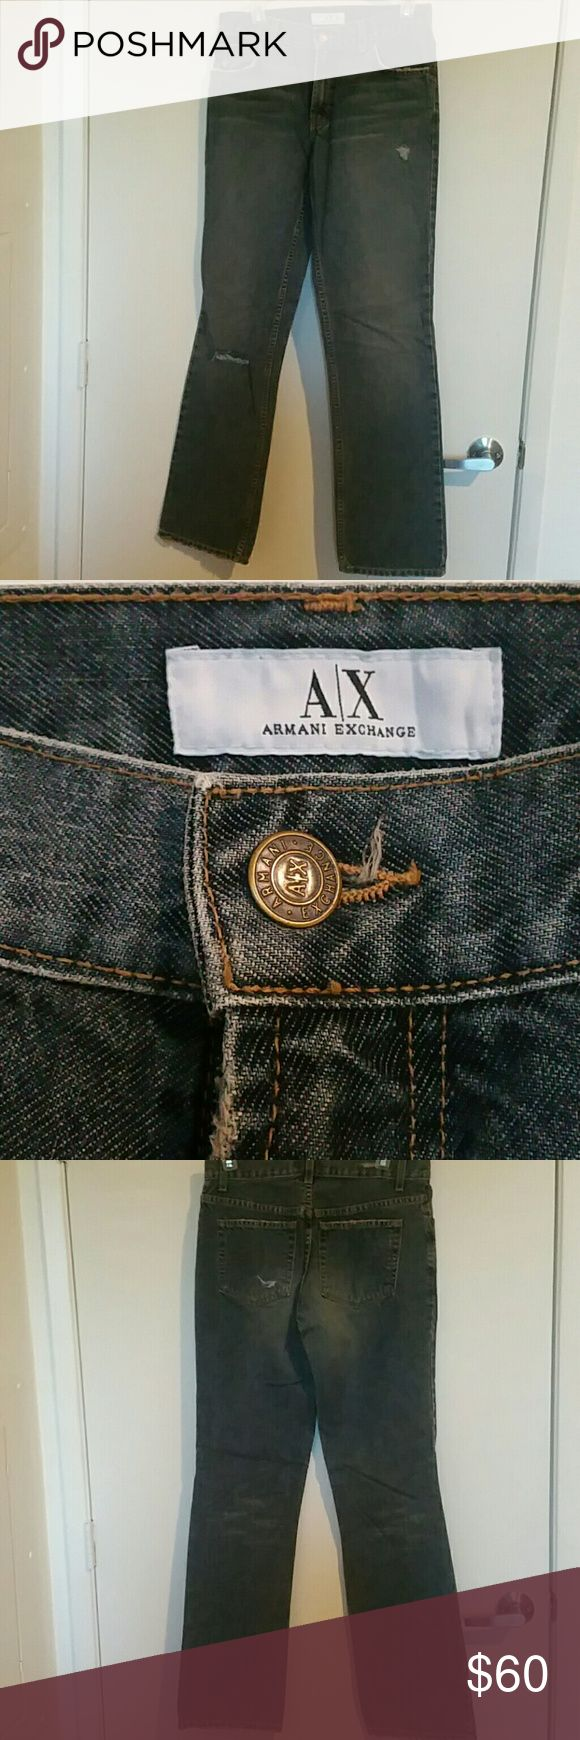 Armani Exchange bootleg J40 jeans size 6 regular Armani Exchange bootleg J40 jeans size 6 regular and like new condition. Please see photos from more details. Feel free to ask any questions that you may have. I am open to all offers. There are not any flaws. Armani Exchange Jeans Boot Cut